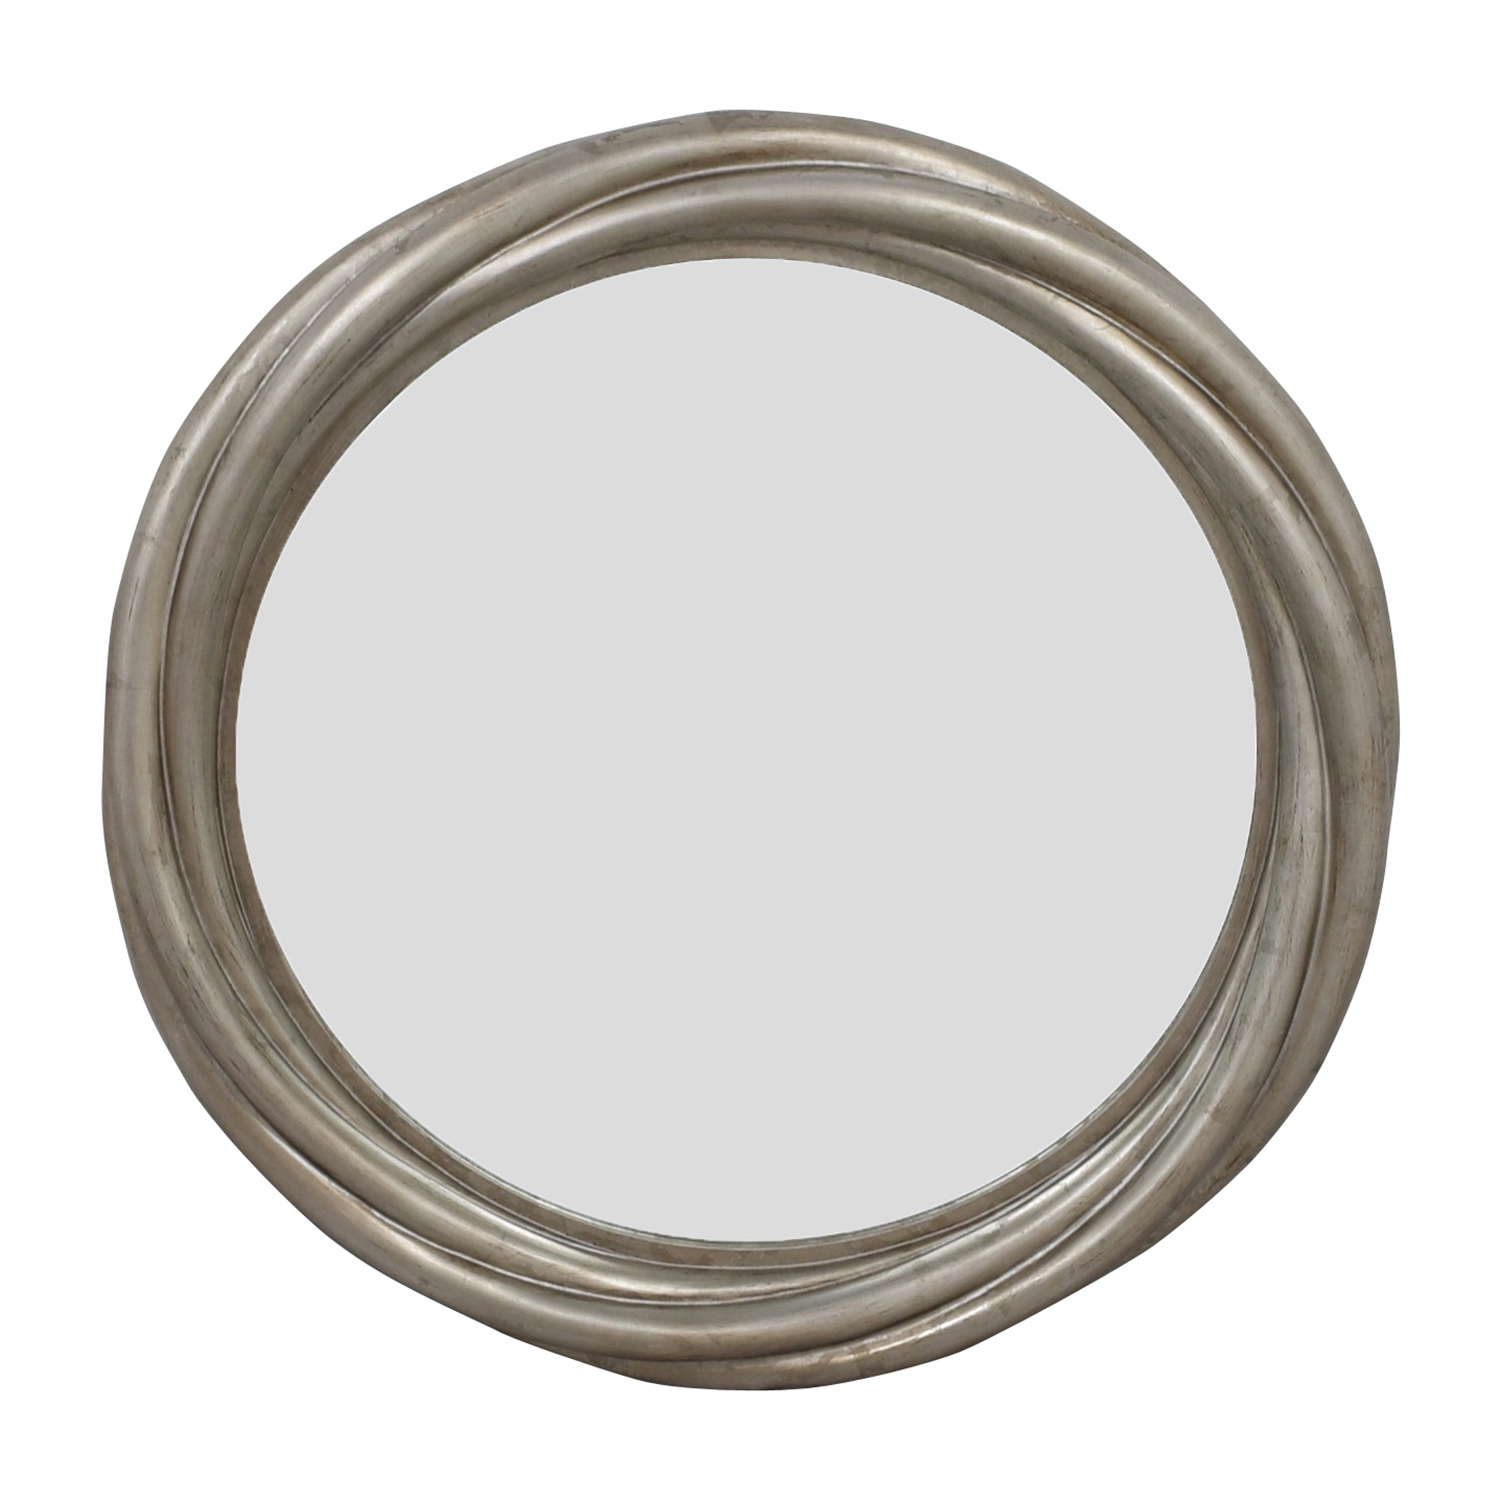 "Thomasville Thomasville Bogart Collection 47"" Round Wall Mirror nj"